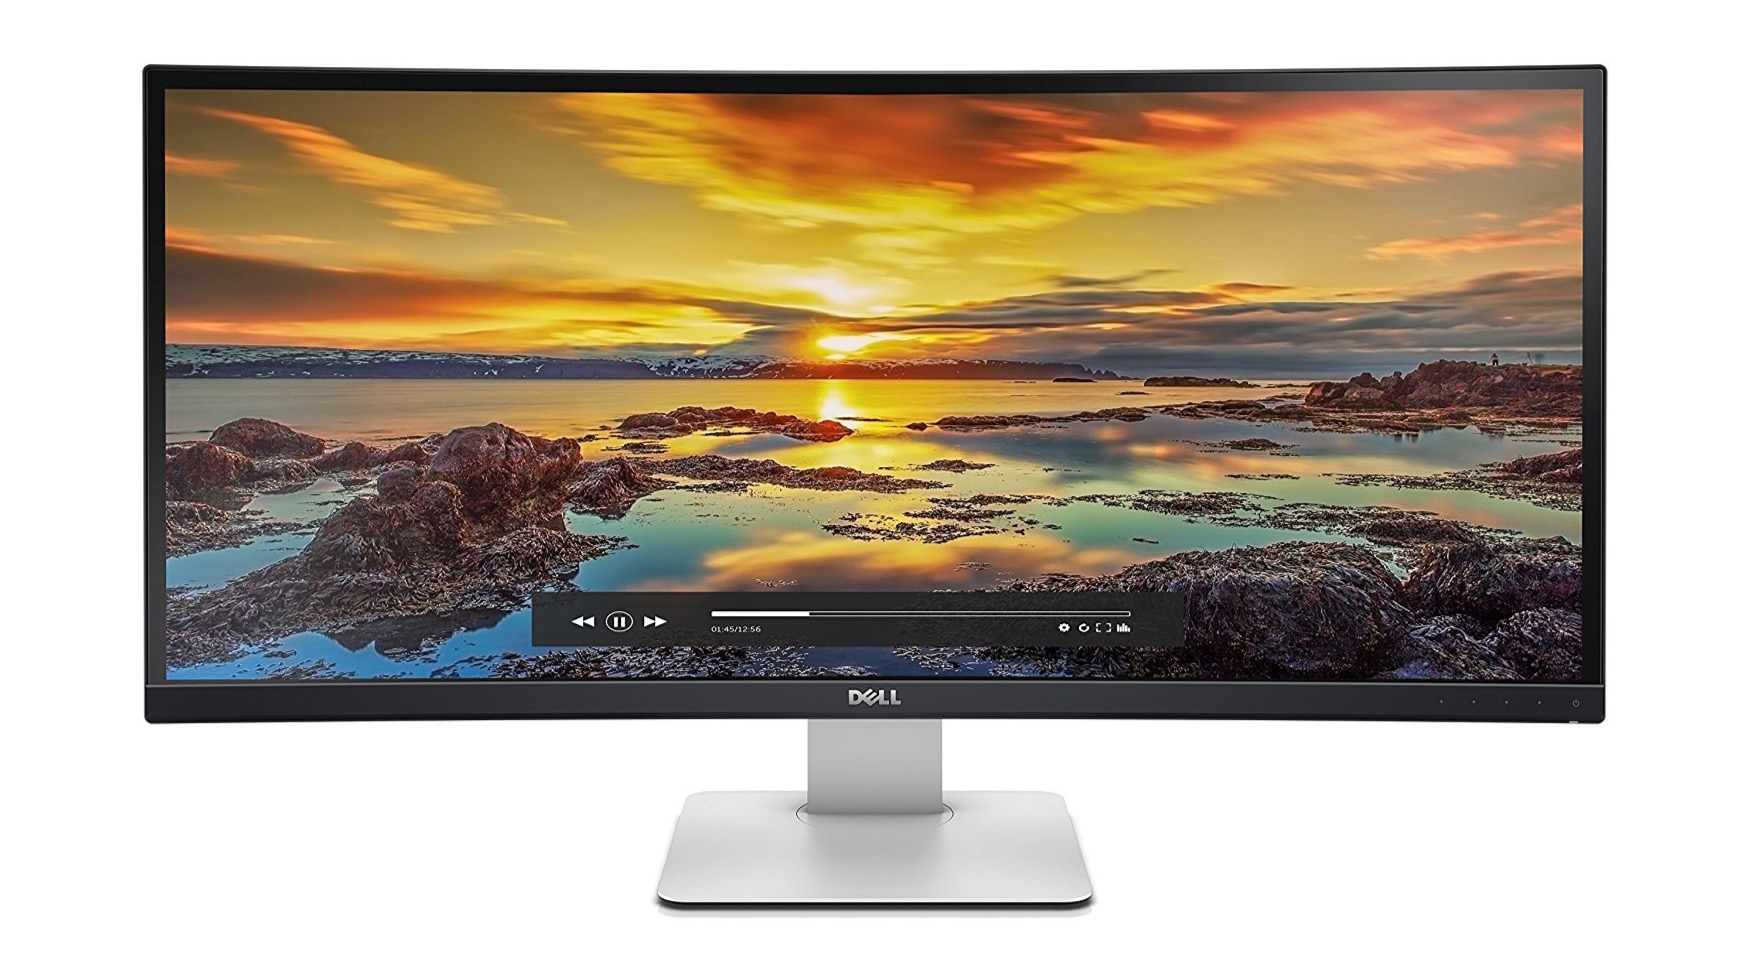 The best ultrawide monitor in 2018